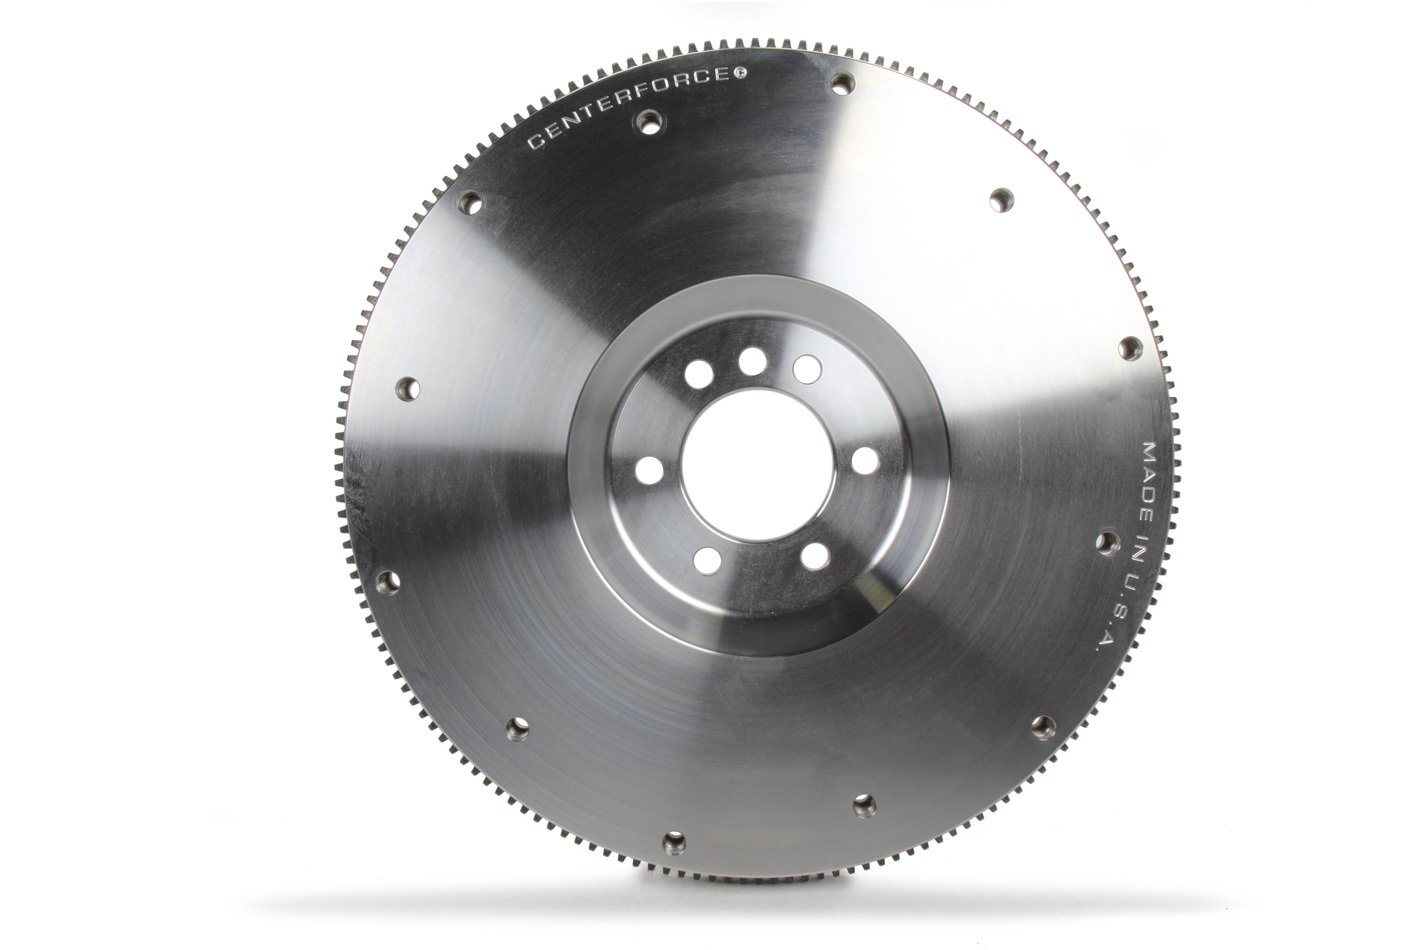 Chevy V8 Flywheel 168 Tooth Int. Balance